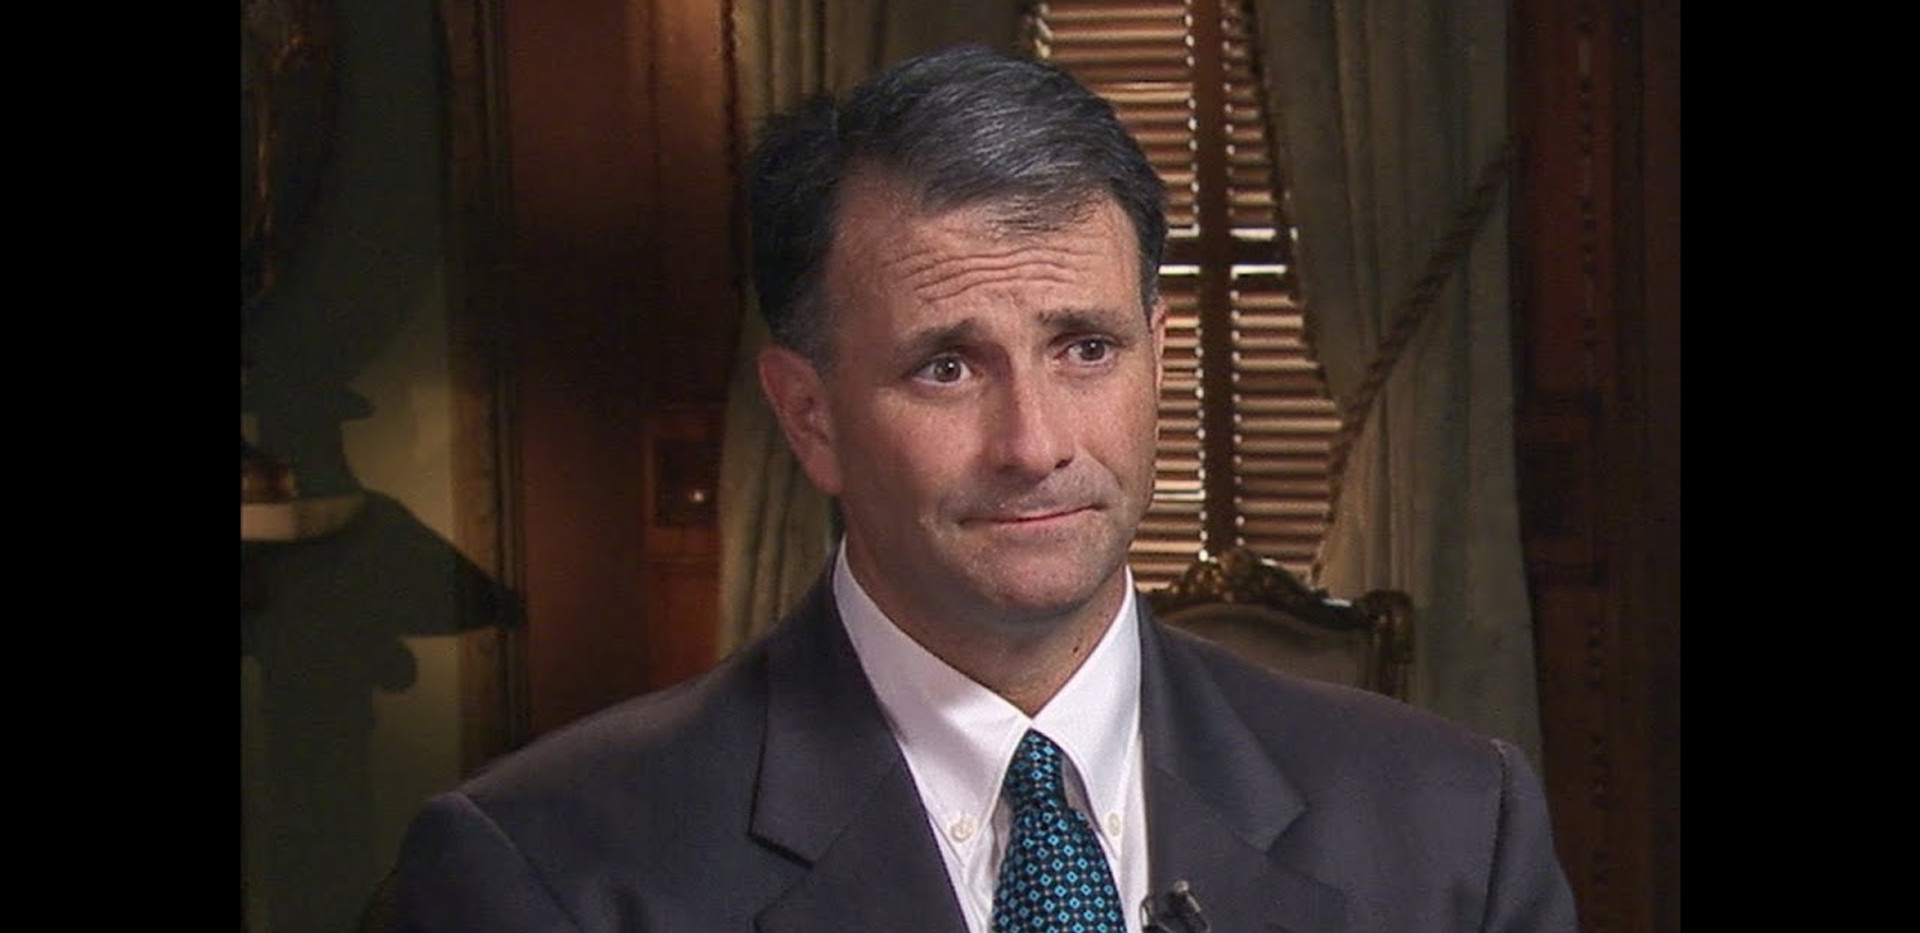 Jack Abramoff talks about political corruption.